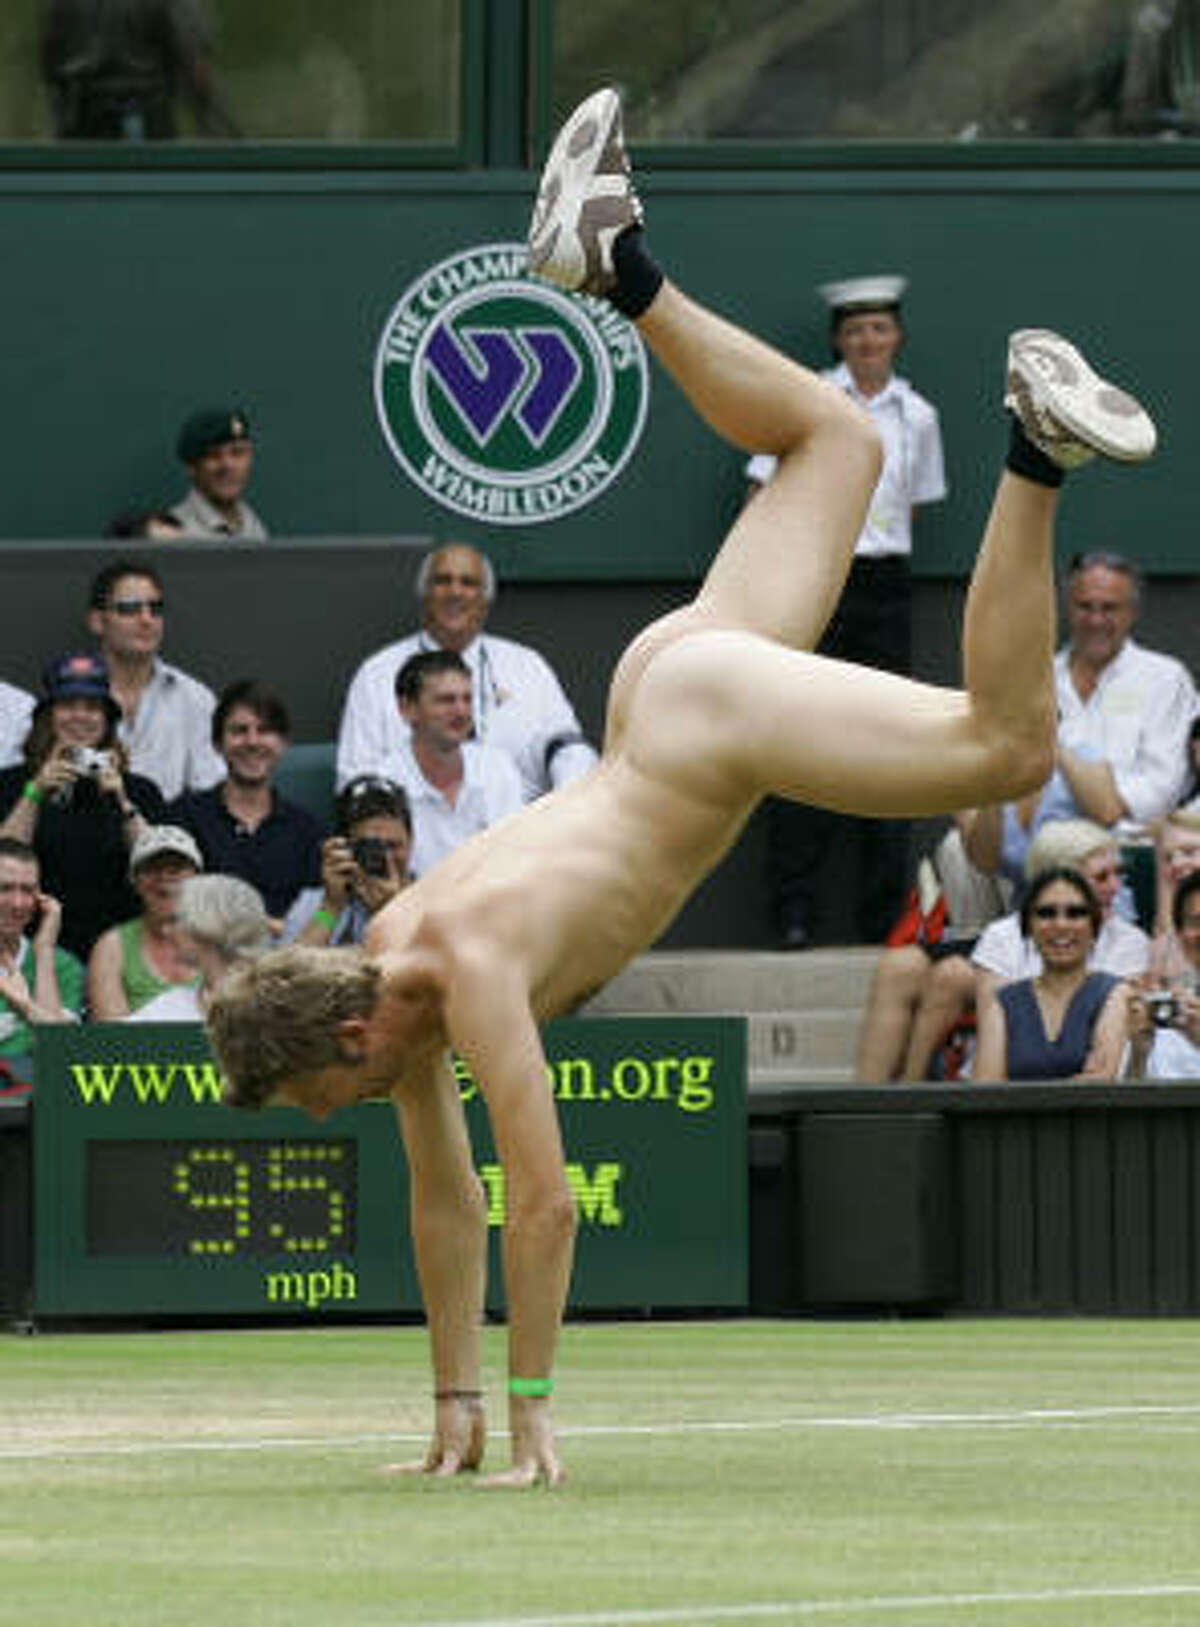 ** FOR USE WITH YEAR END--FILE **An unidentified streaker does a cartwheel, as he interrupts the Women's Singles quarter-final match between Maria Sharapova and Elena Dementieva, both of Russia, on the Centre Court at Wimbledon, in this July 4, 2006, file photo.